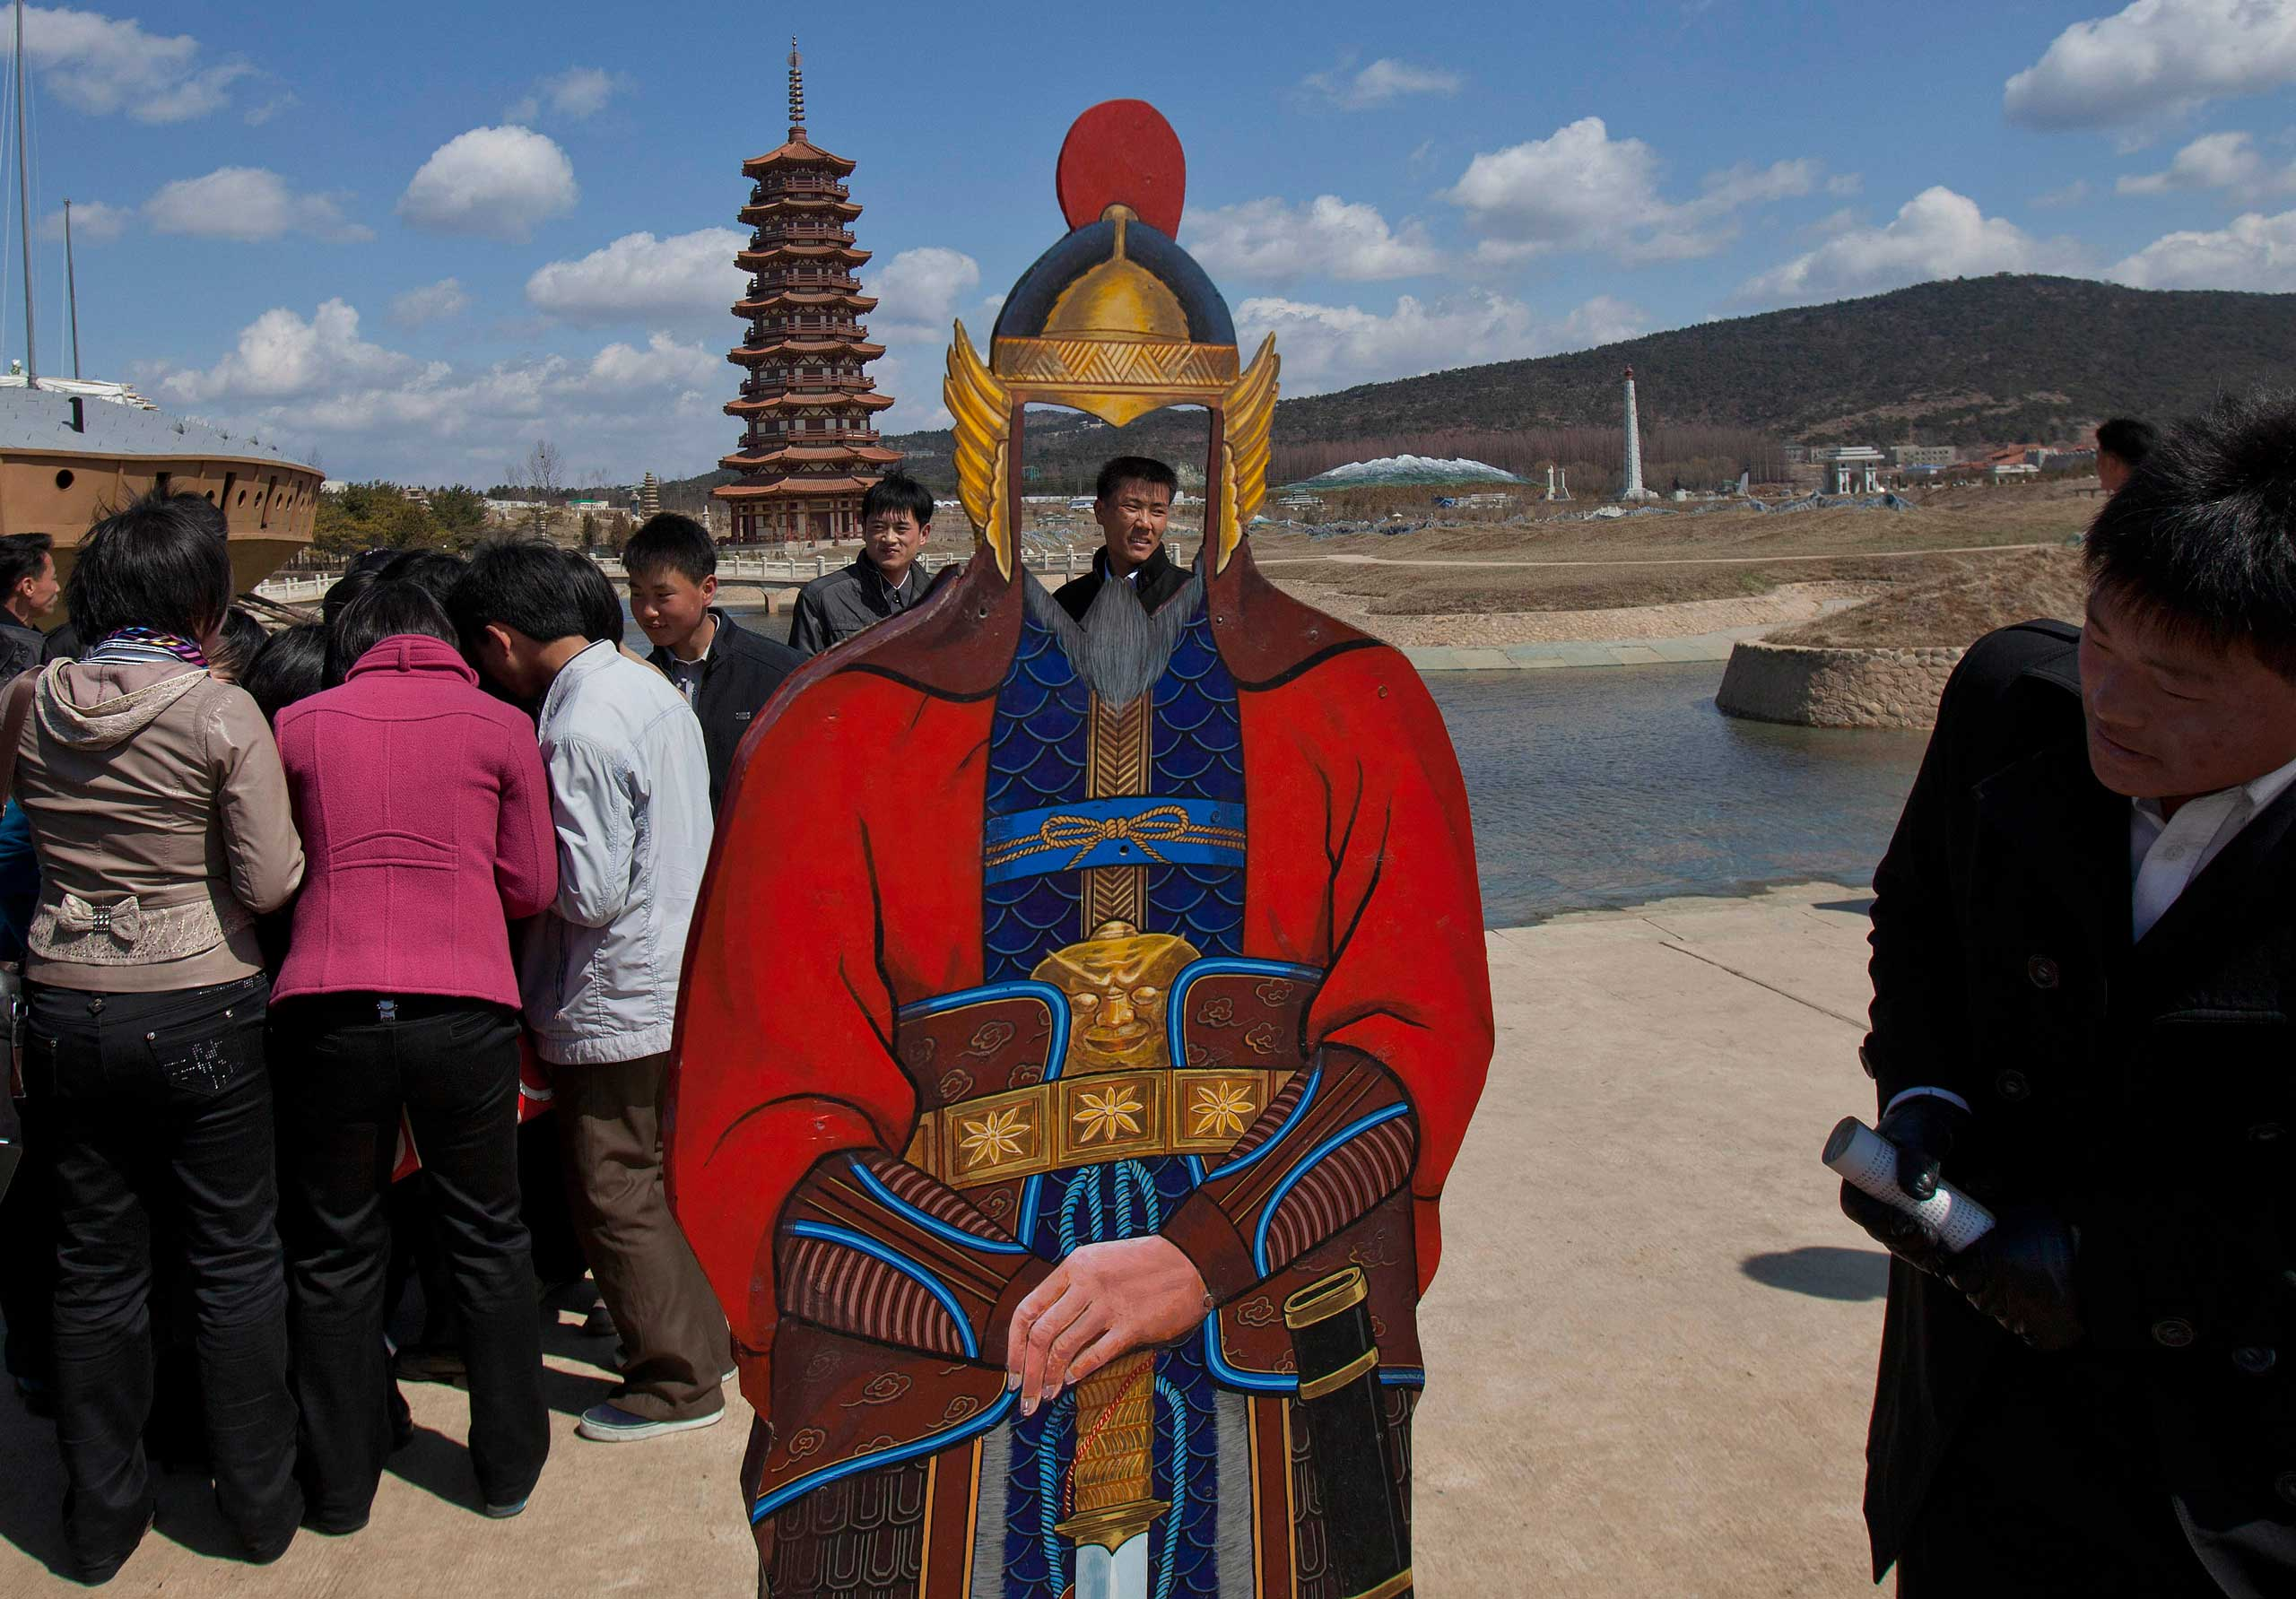 April 11, 2013. North Koreans visit the Pyongyang Folk Park on the outskirts of Pyongyang, North Korea.